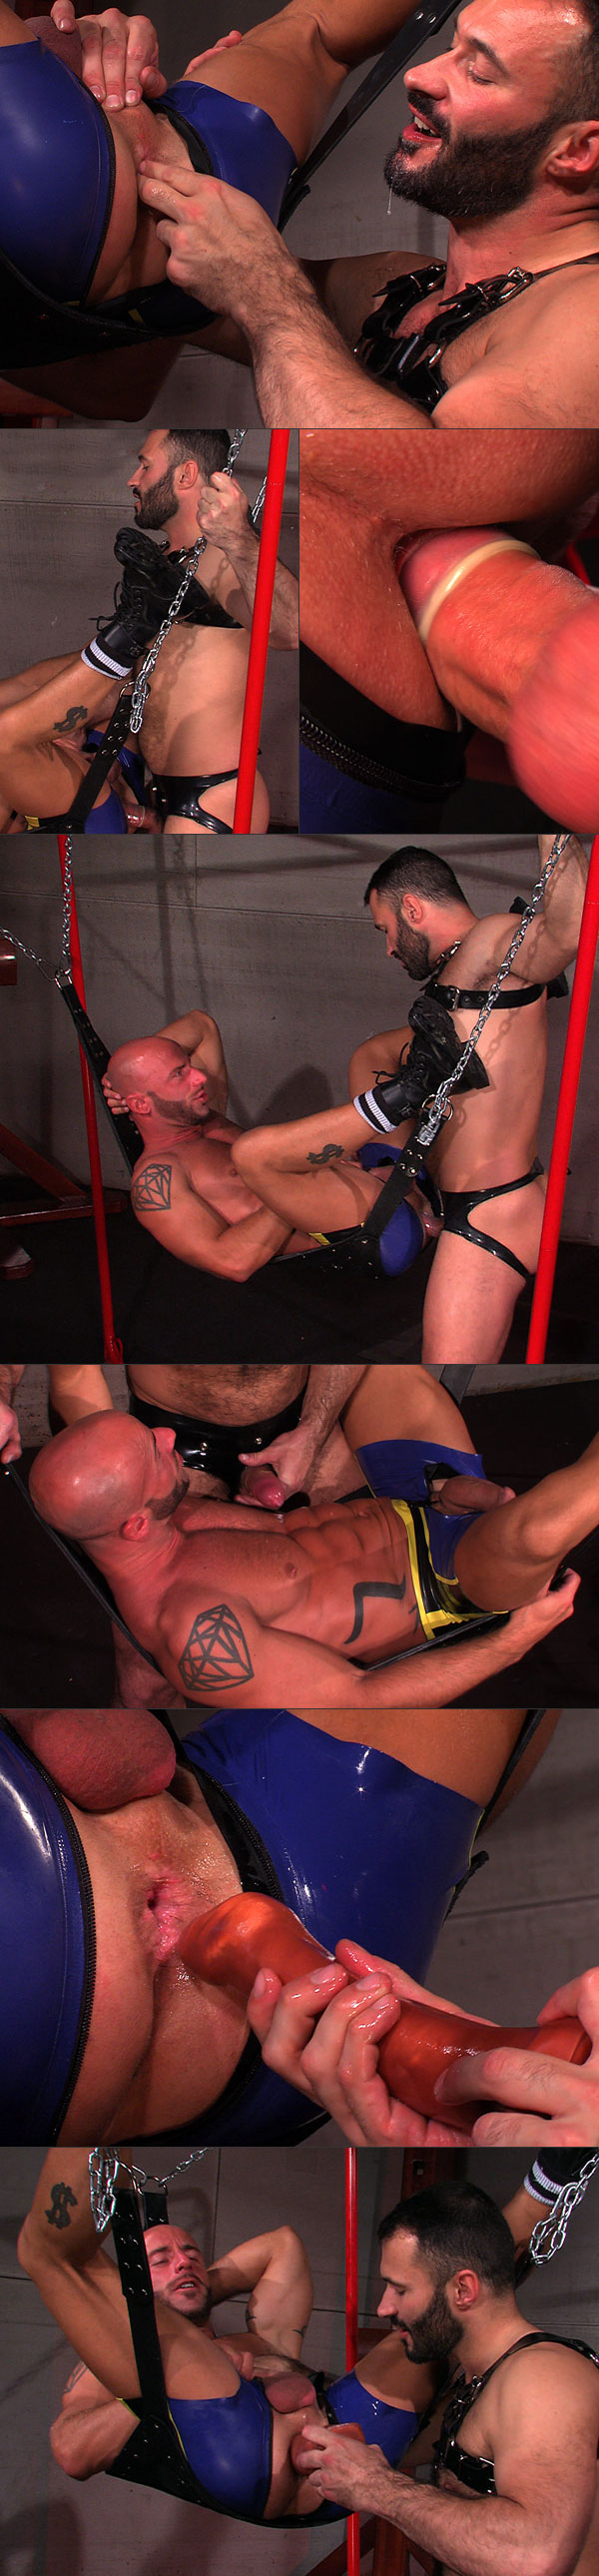 Aymeric Porn aymeric deville paddled in rubber - guys in gear